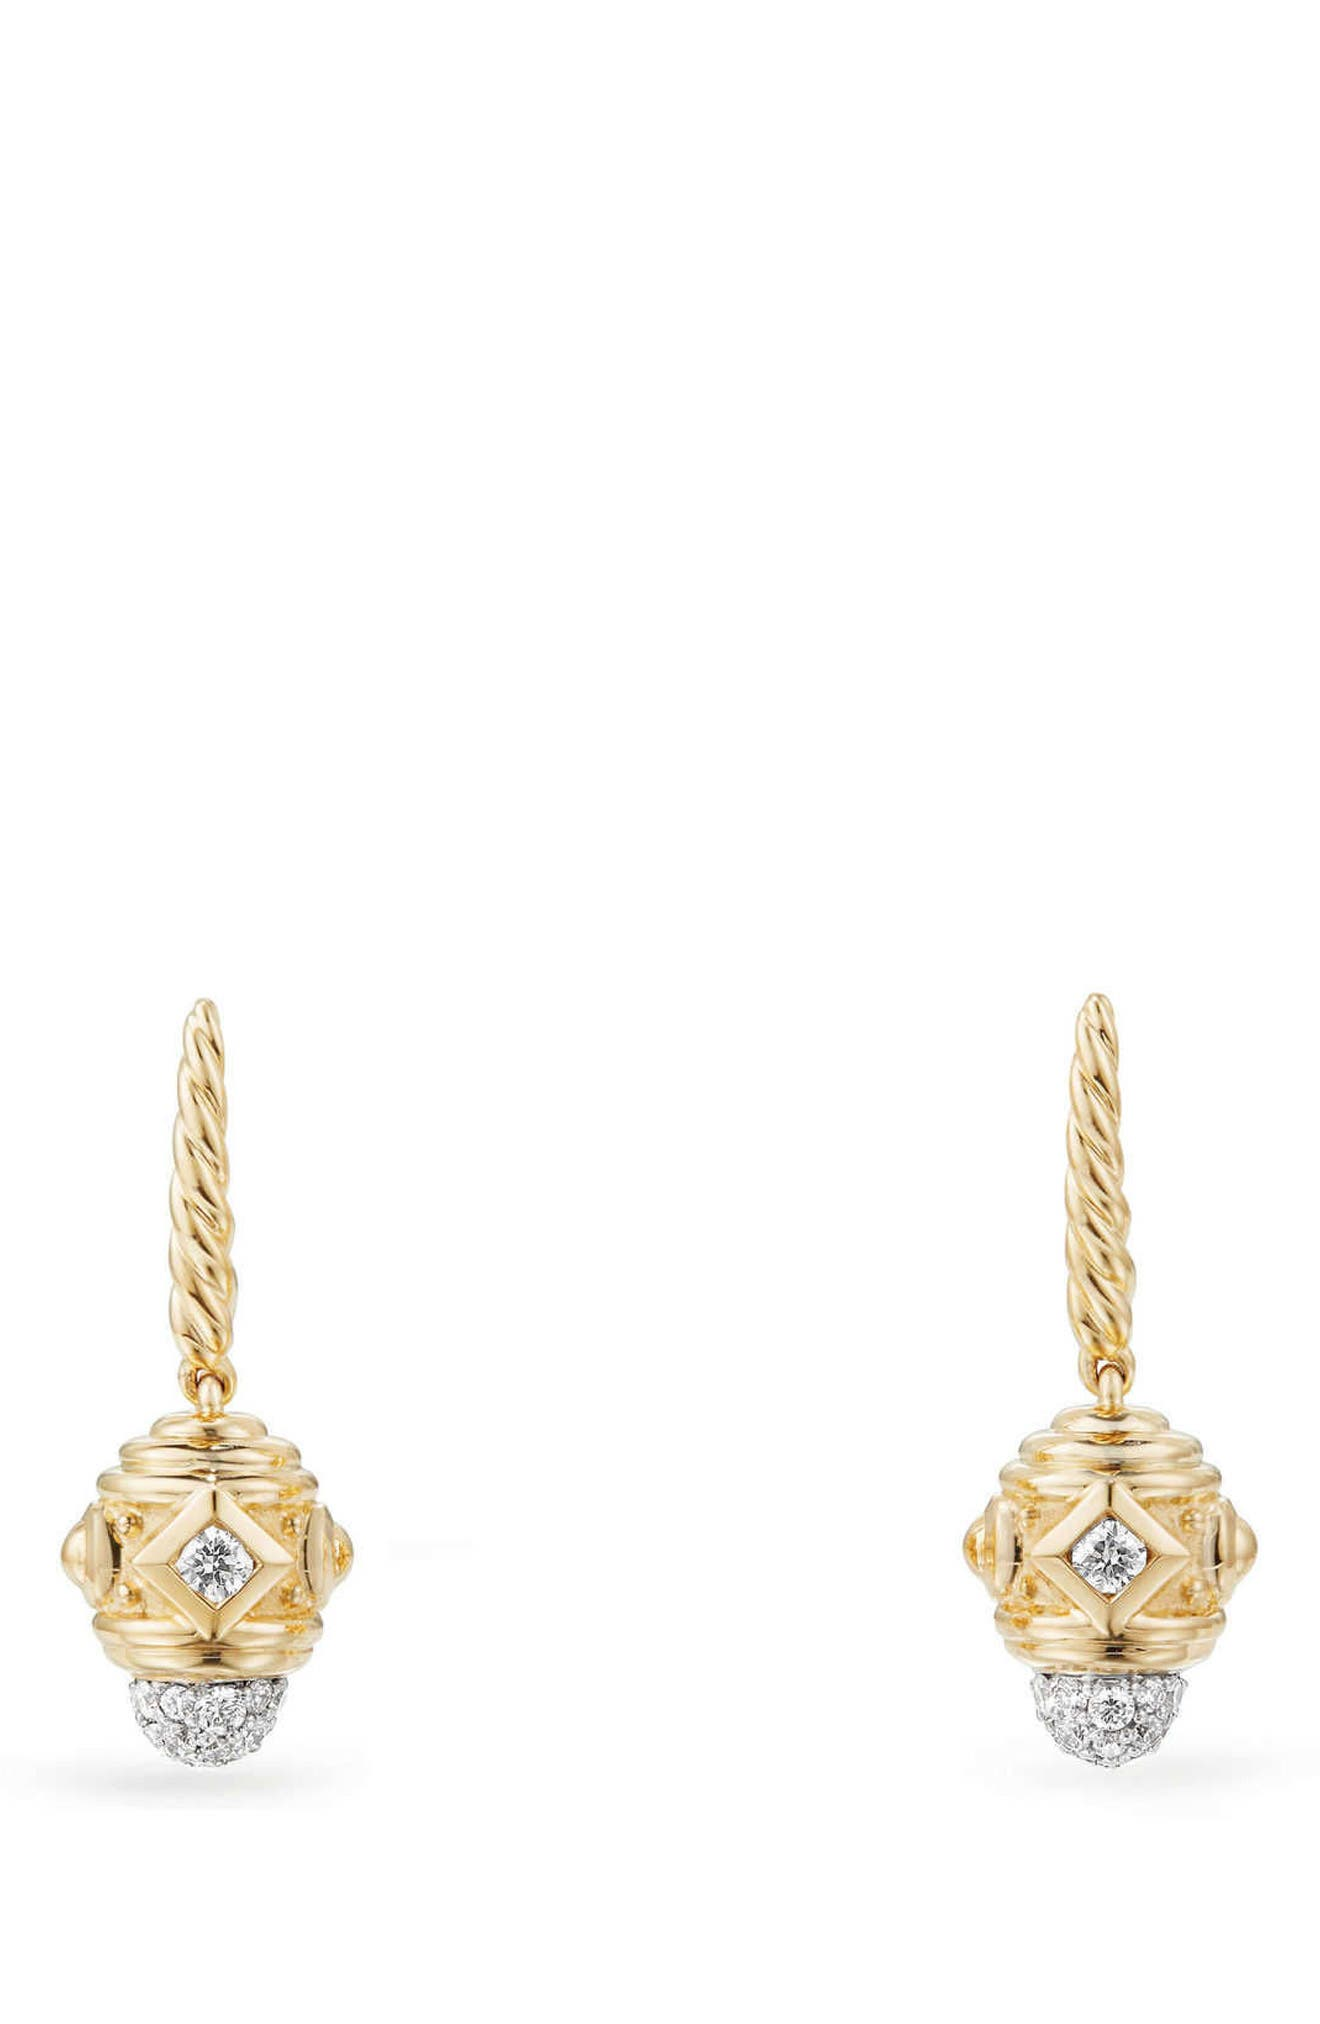 Renaissance Drop Earrings with Diamonds in 18K Gold,                             Main thumbnail 1, color,                             GOLD/ DIAMOND